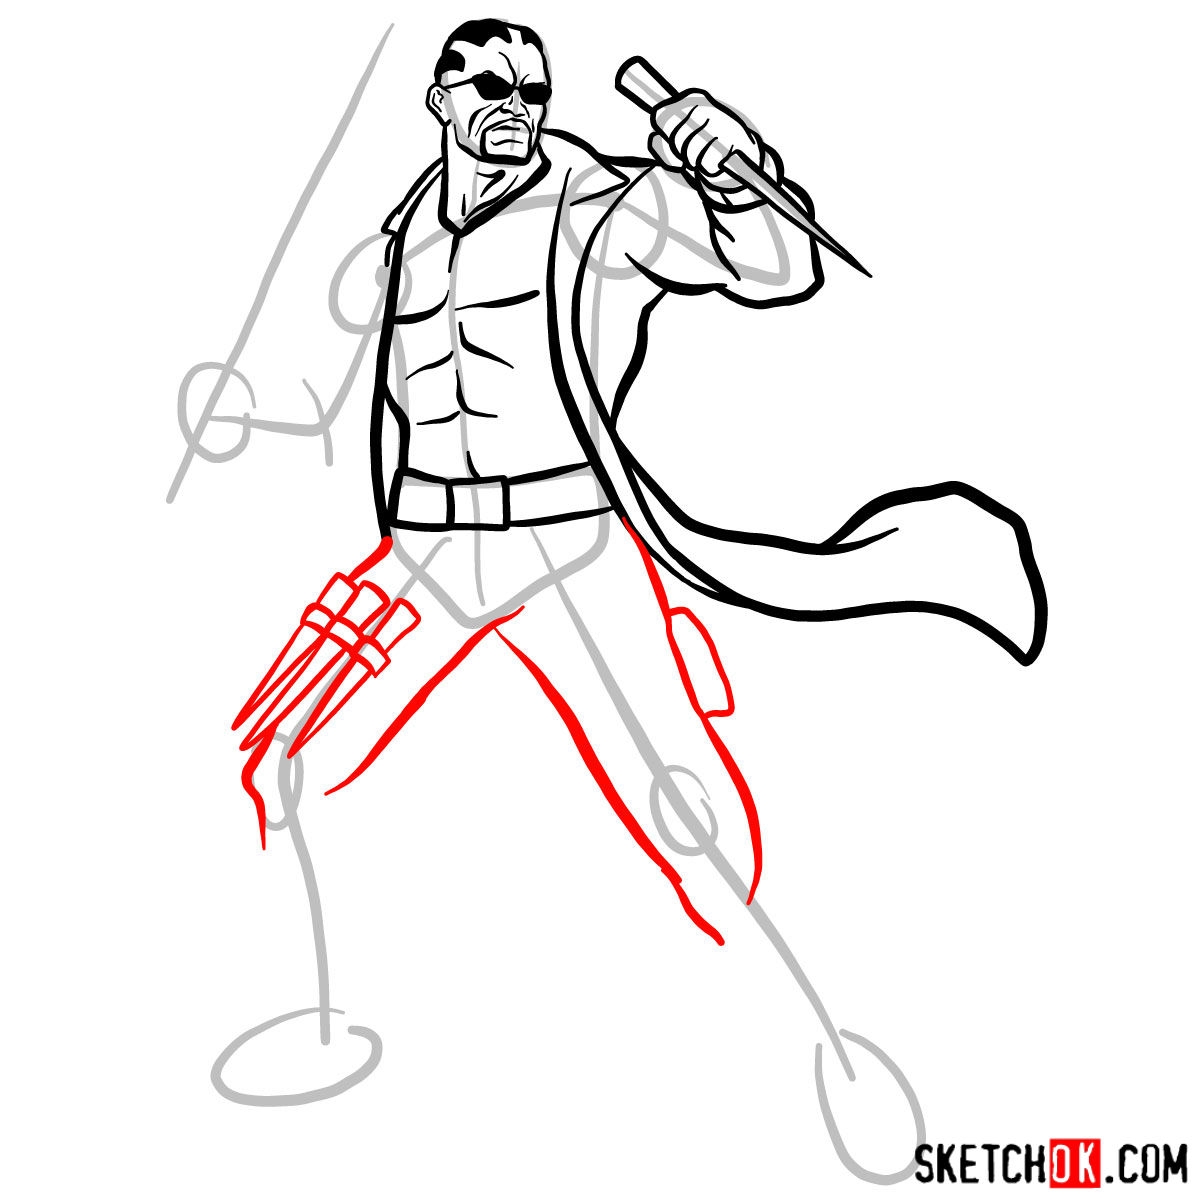 How to draw Blade from Marvel Comics - step 11